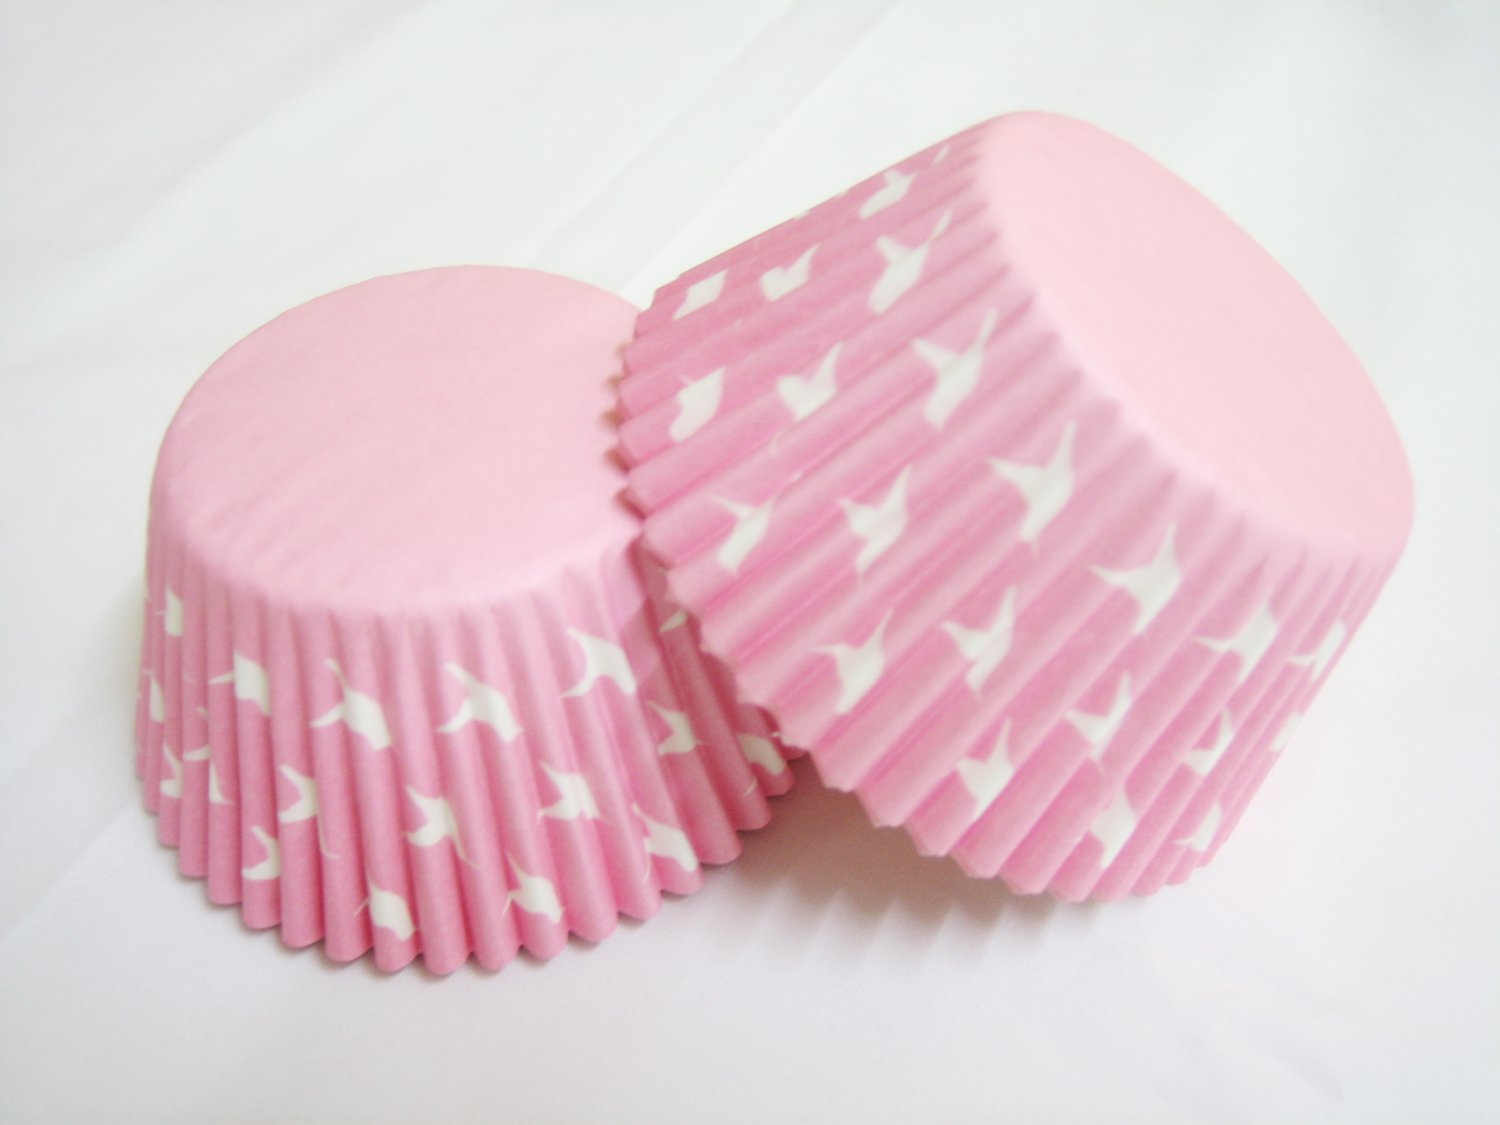 100pcs Pink Cake Cup Printed with White Dove US Standard Size